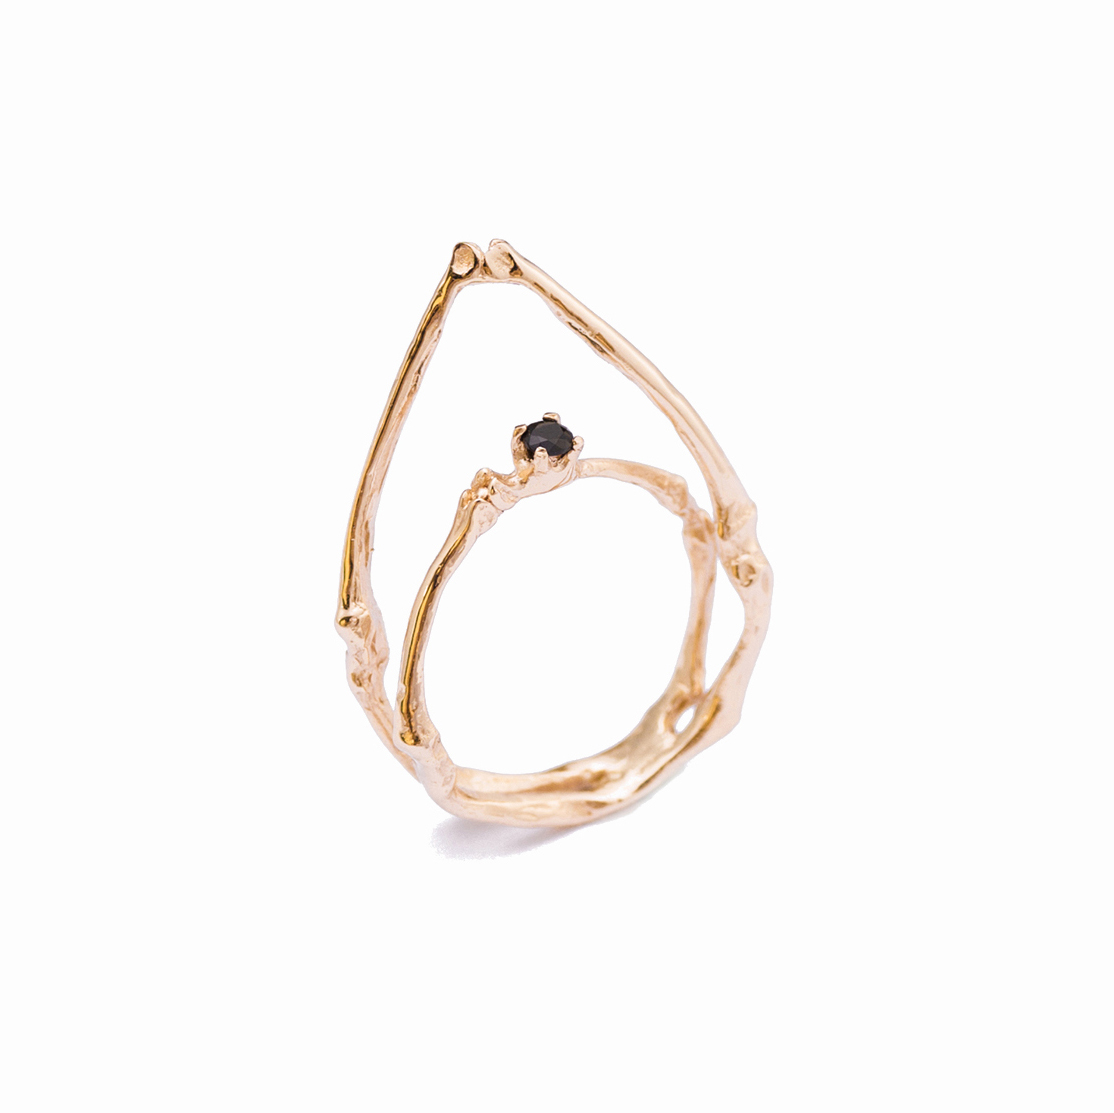 Towers Ring : rose gold, black diamond